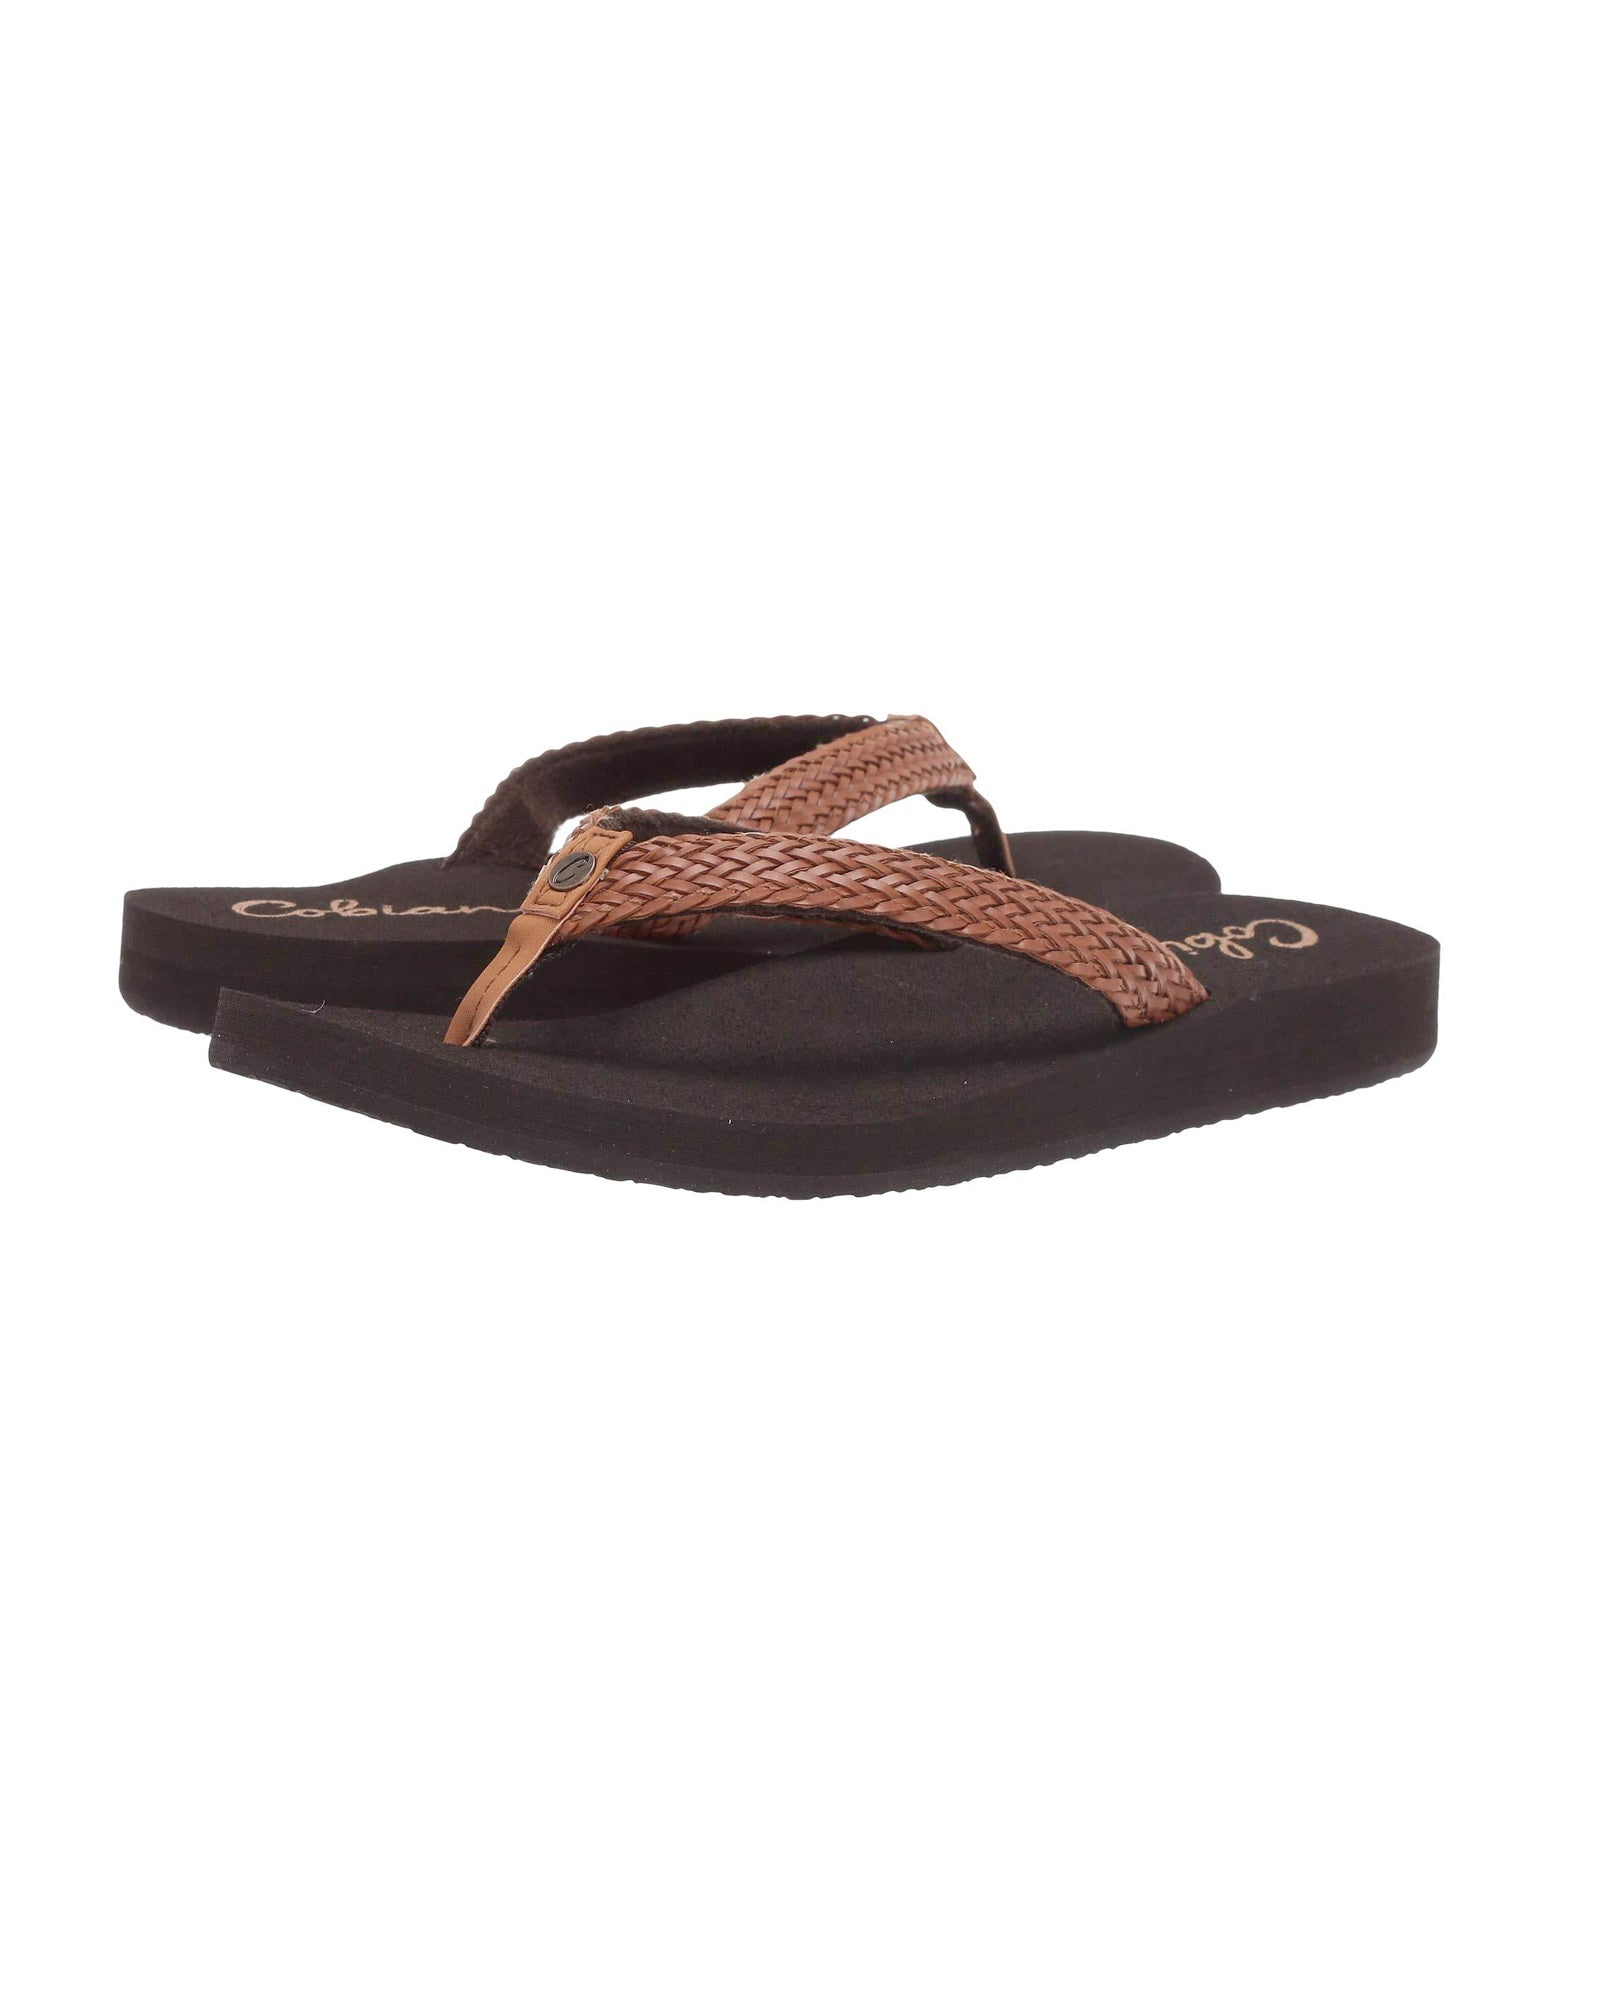 Cobian Lalati Women's Sandals